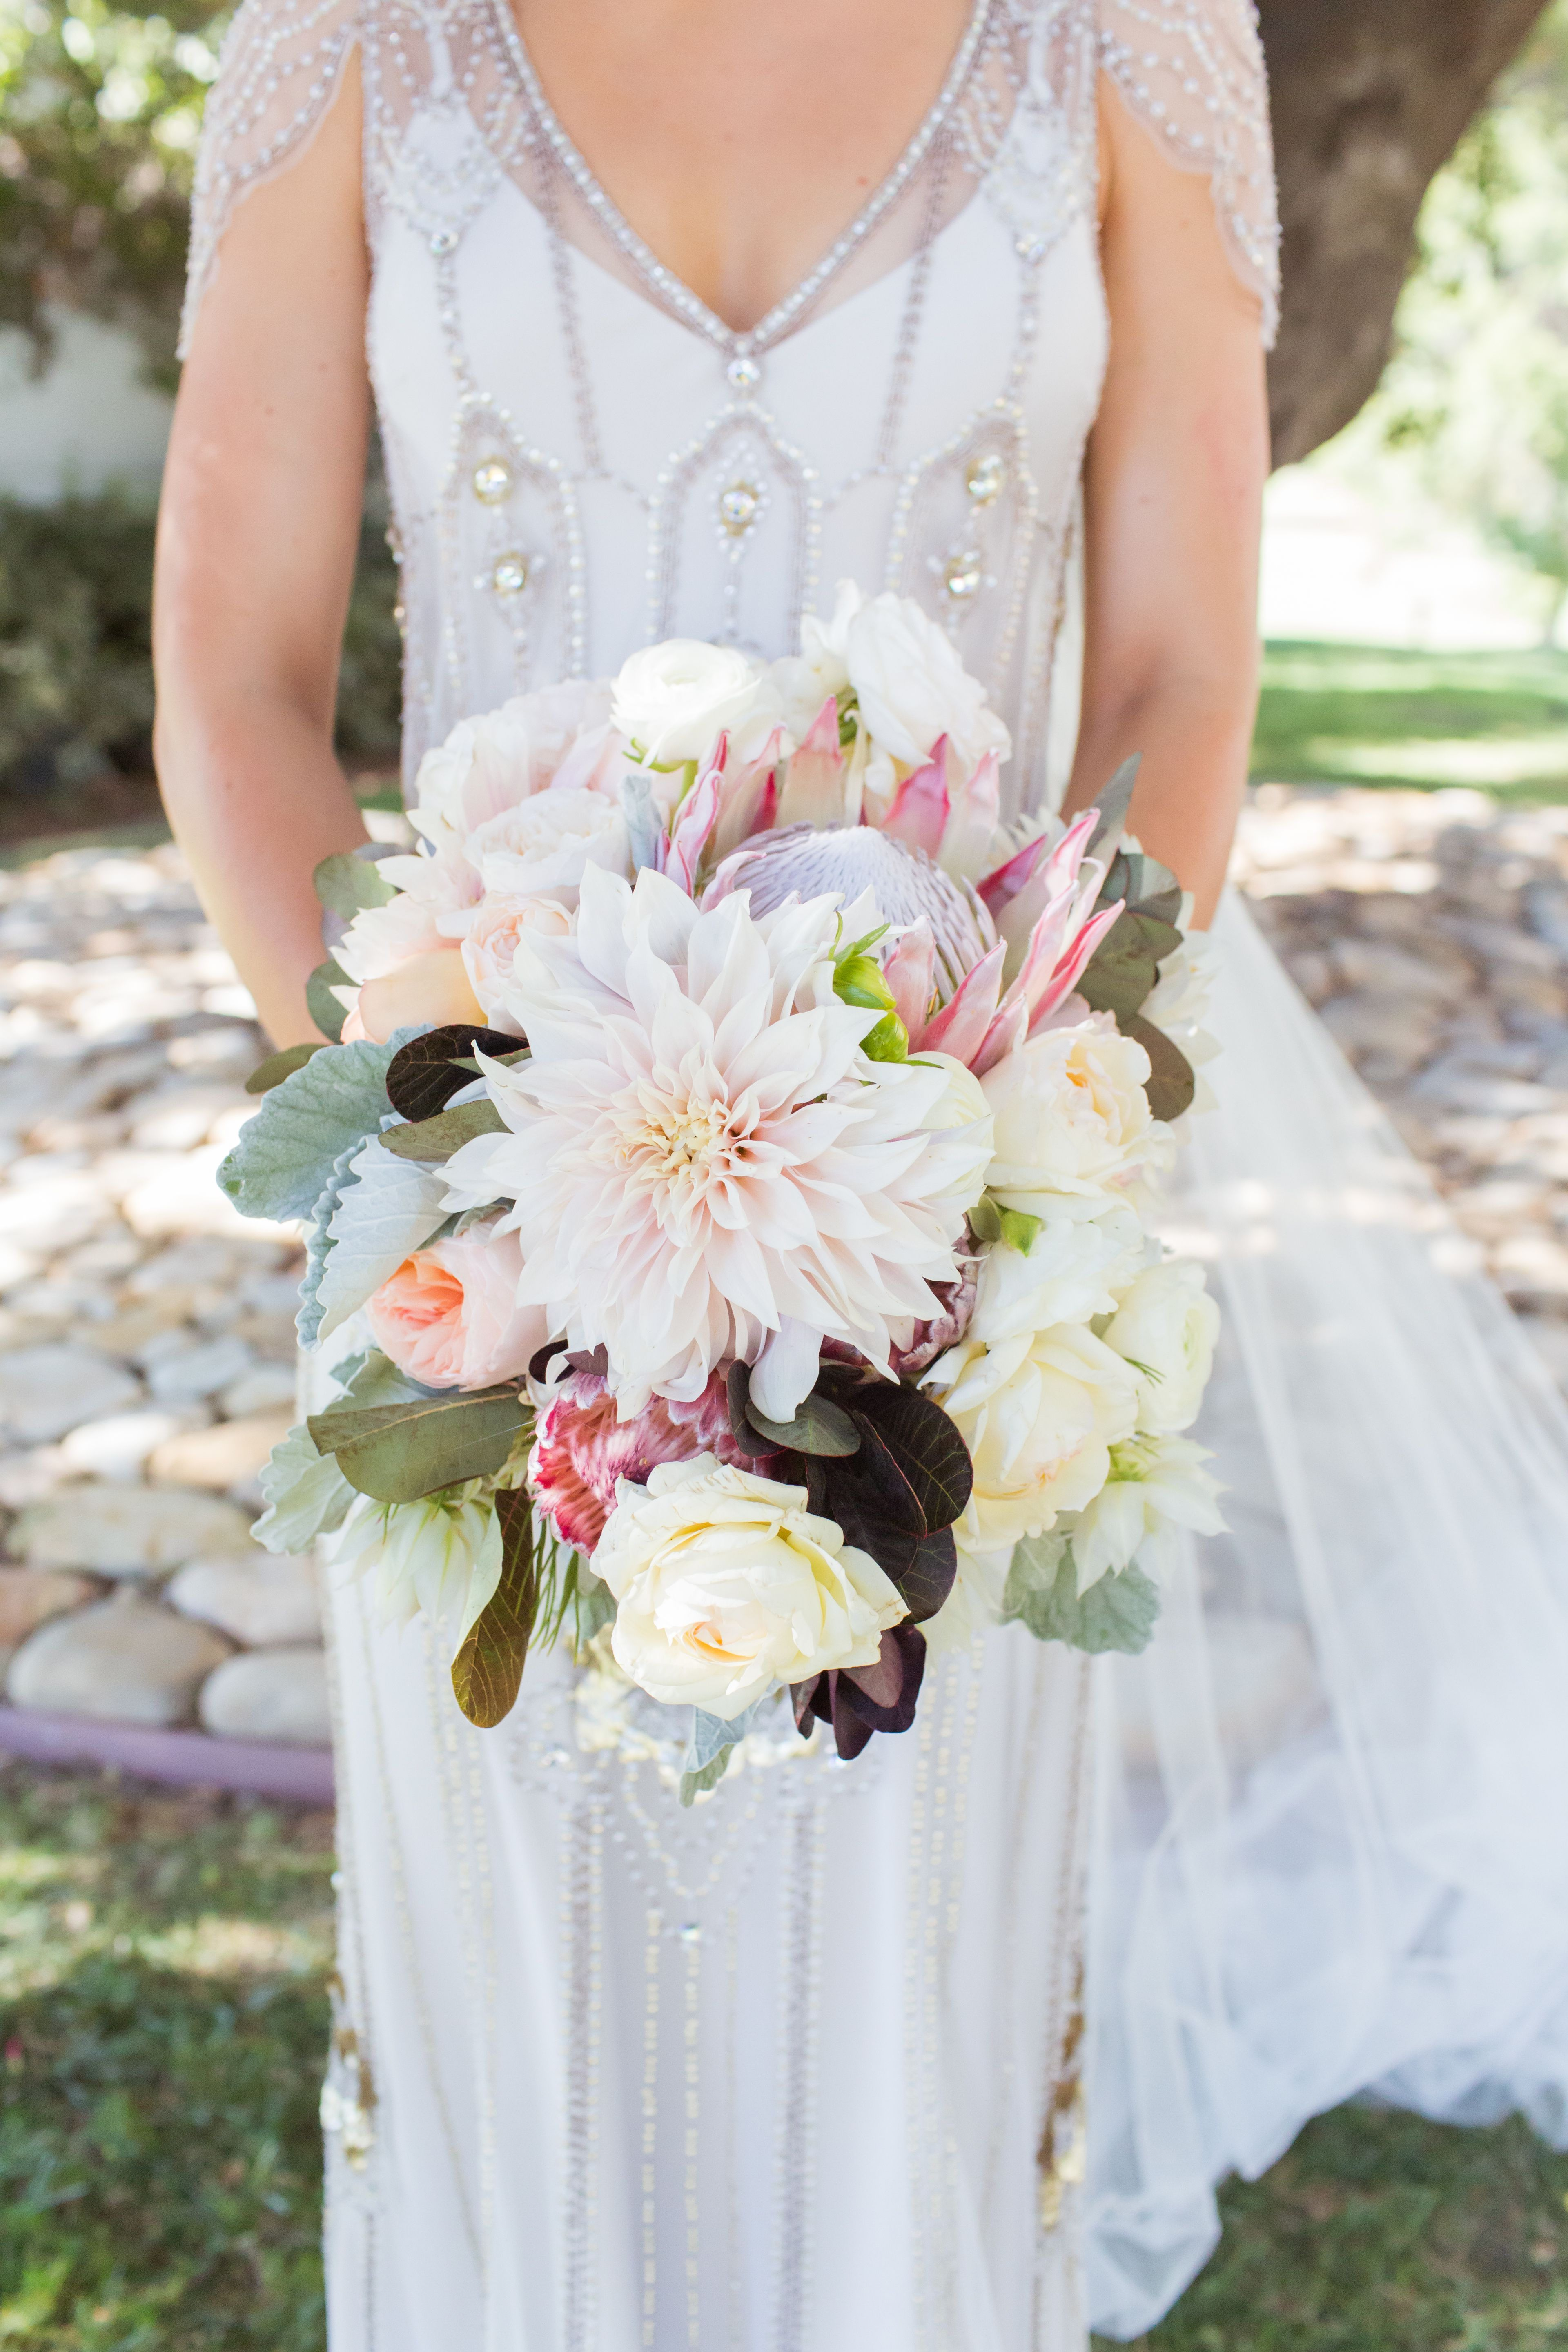 Insanely Stunning Spring Wedding Bouquets In 2020 Spring Wedding Bouquets Wedding Bouquets Spring Wedding Flowers